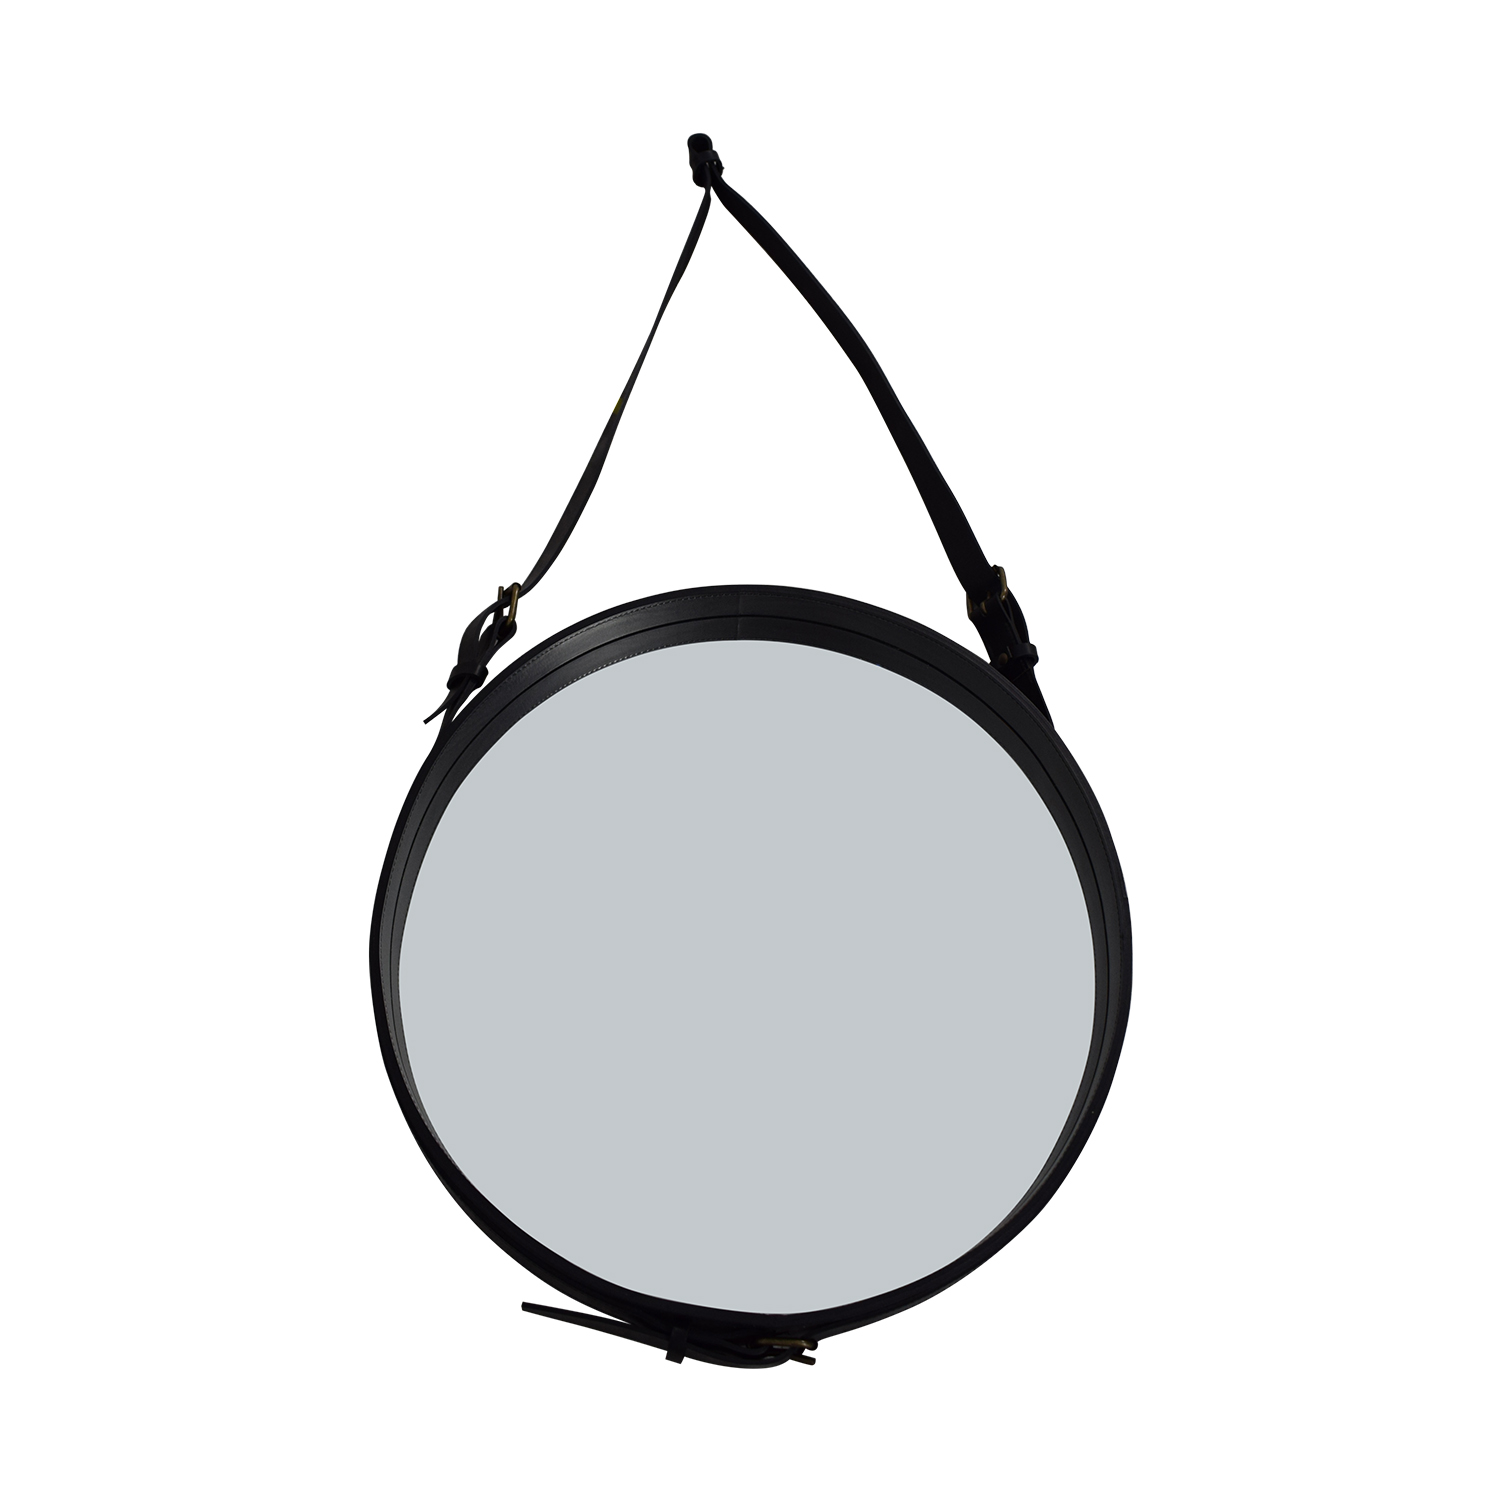 Circular Hanging Mirror with Leather Strap Frame